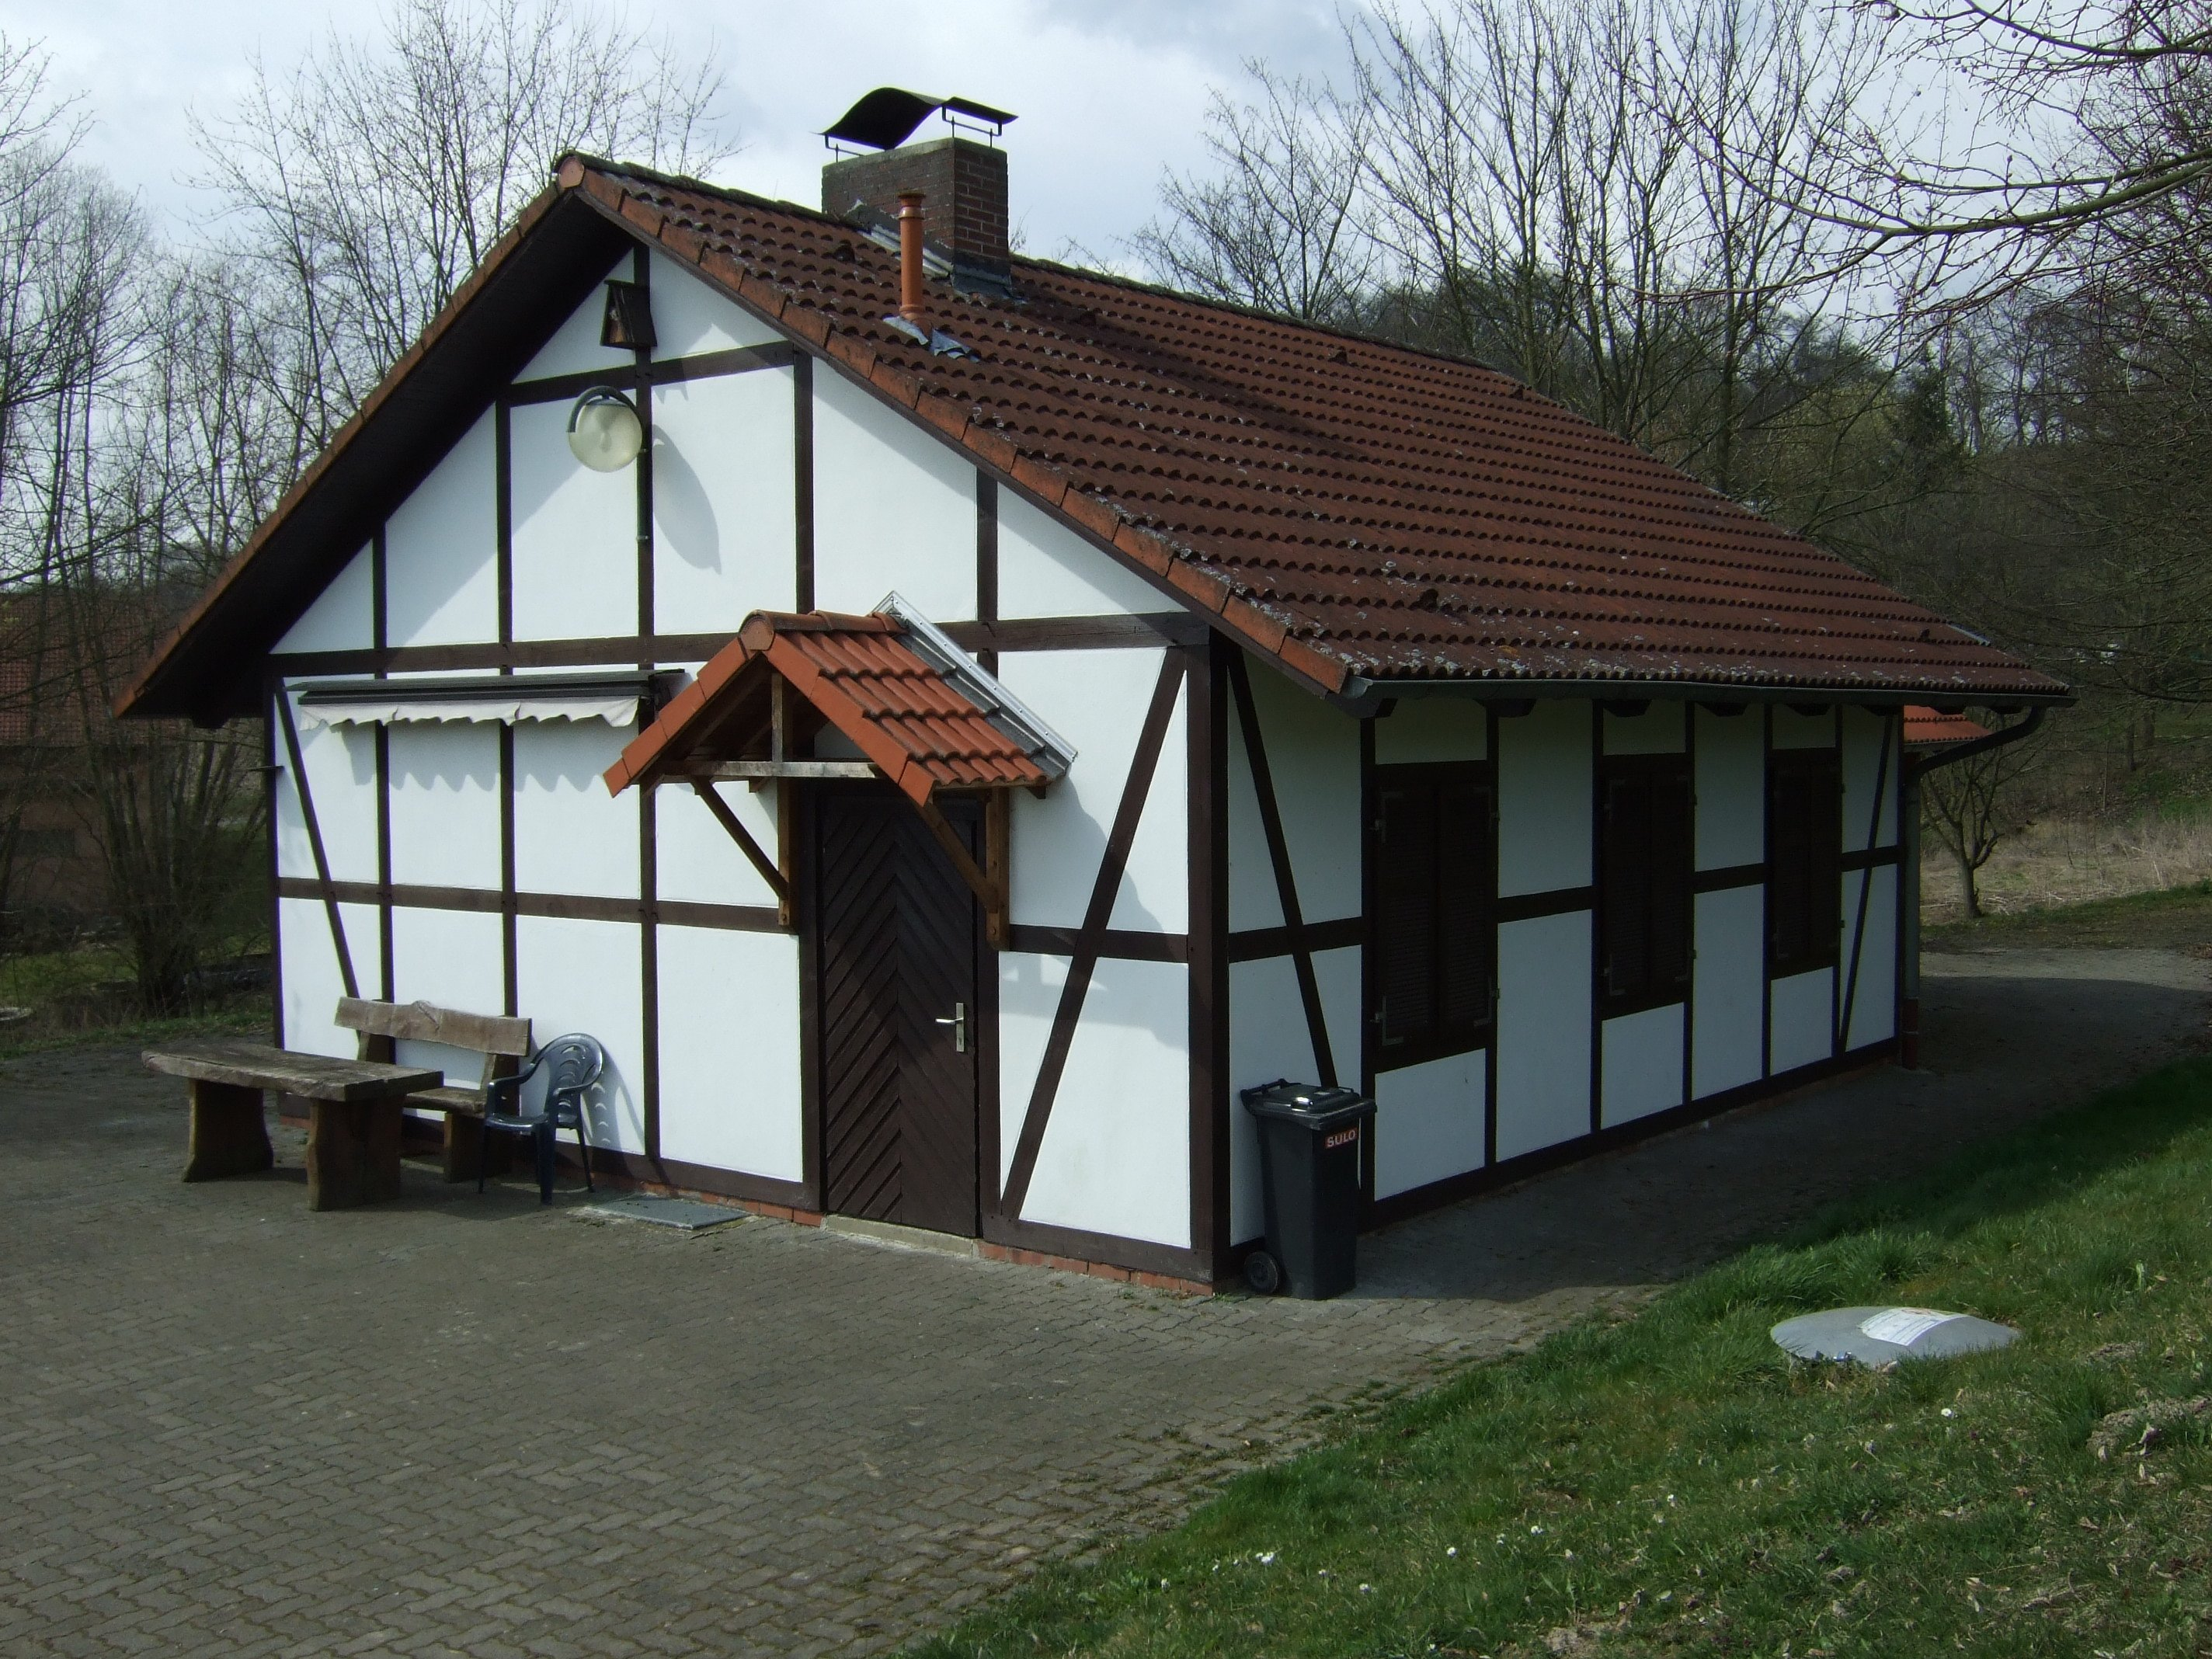 Grillhütte in Ermetheis